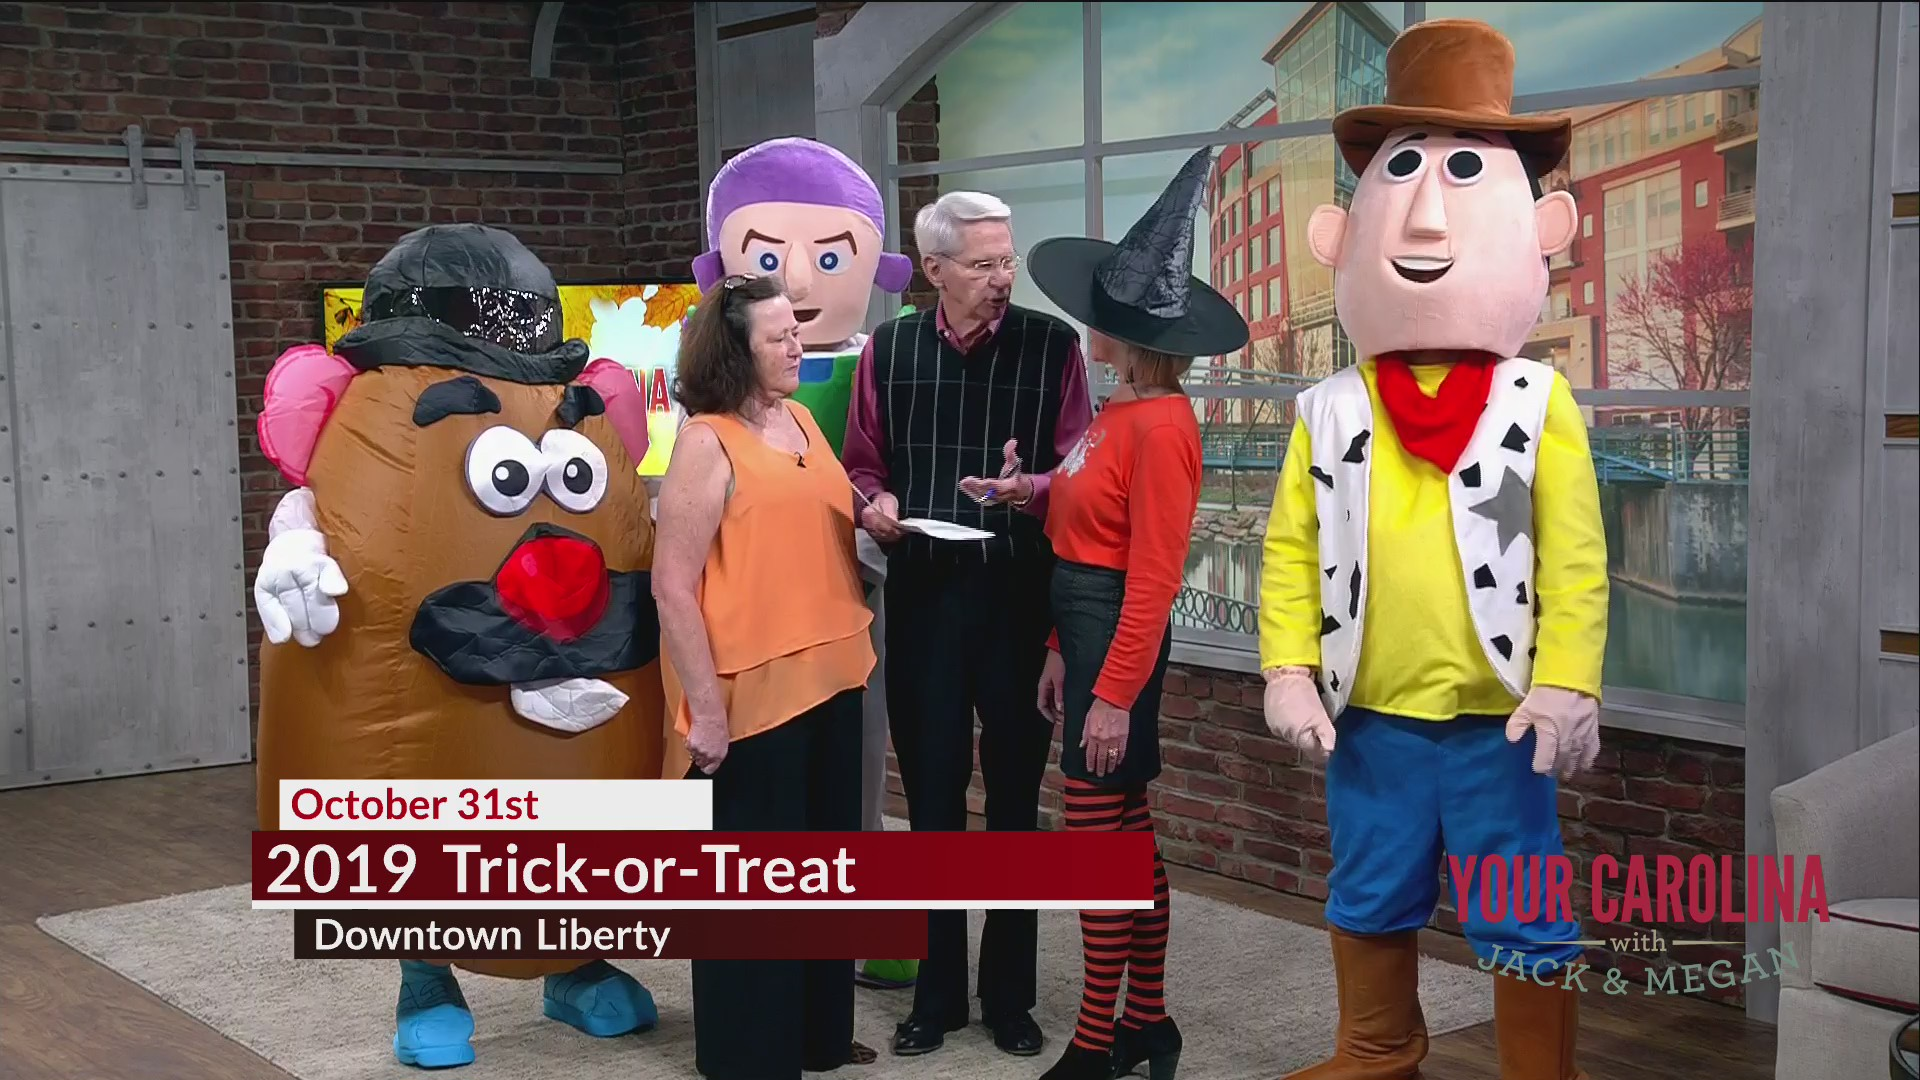 2019 Trick-or-Treat in Downtown Liberty